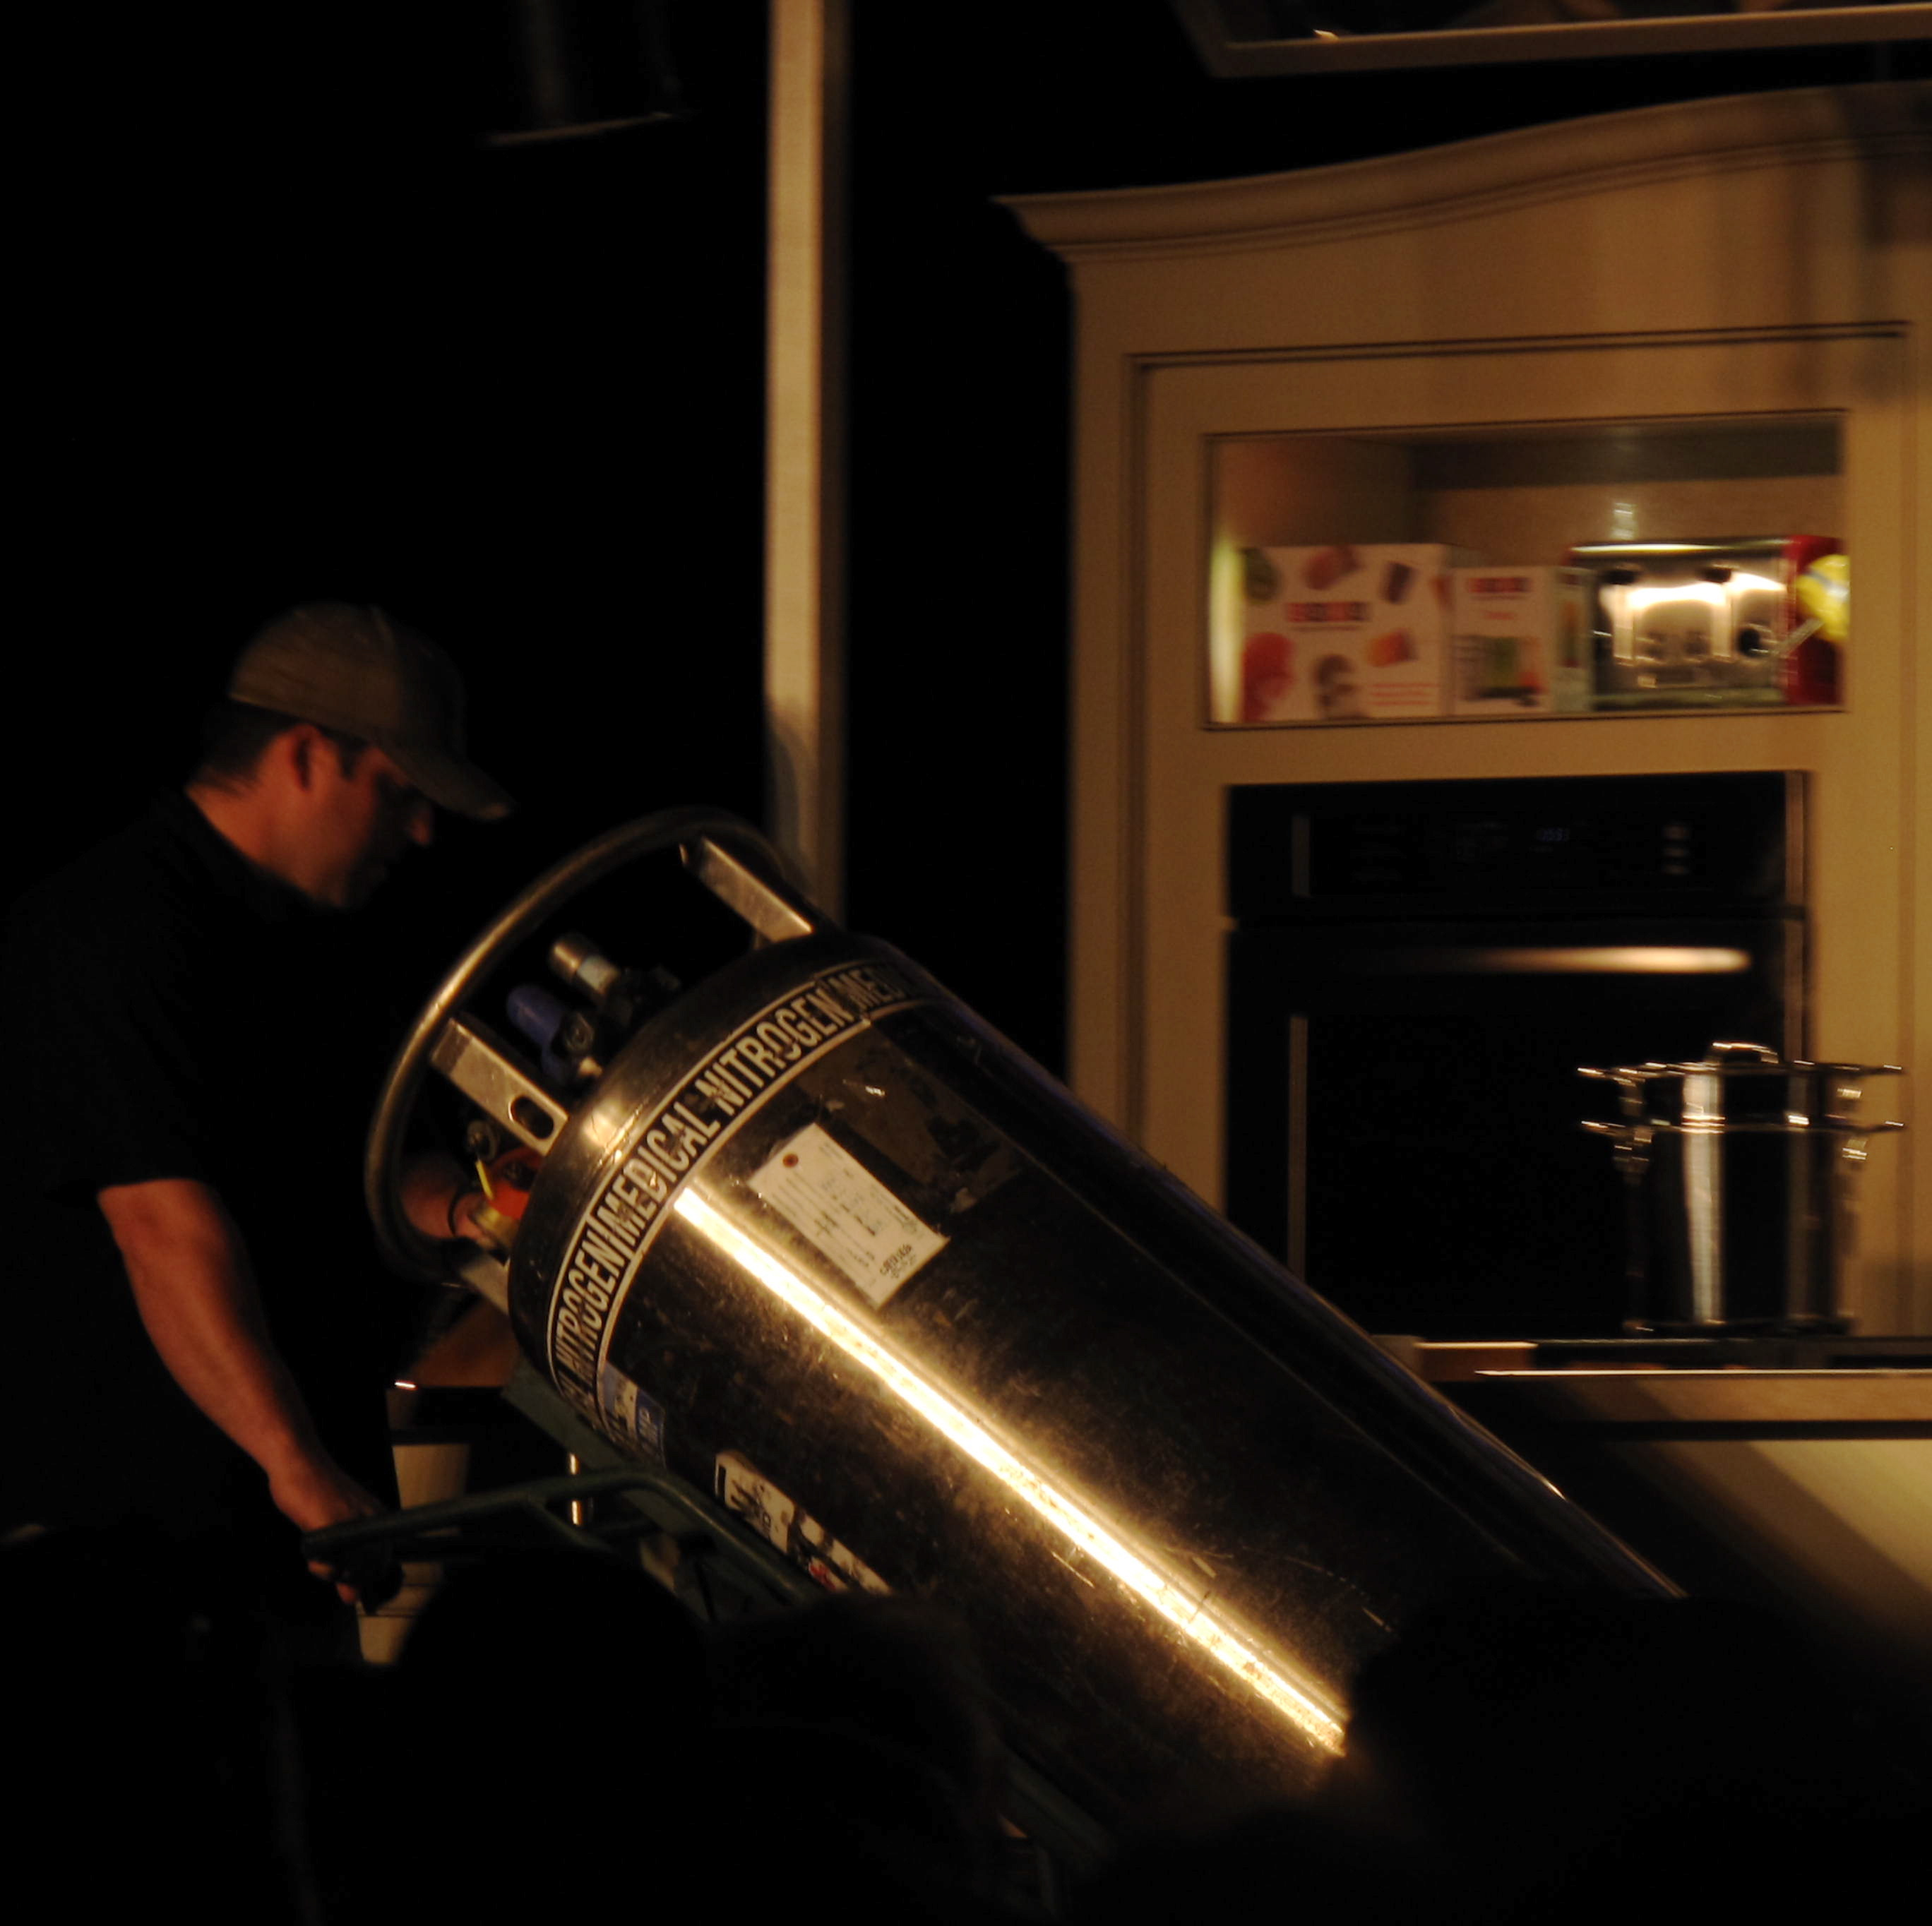 The Top Chef winner's strategy was actually to pull out all the guns — including this giant container of liquid nitrogen as a joke.